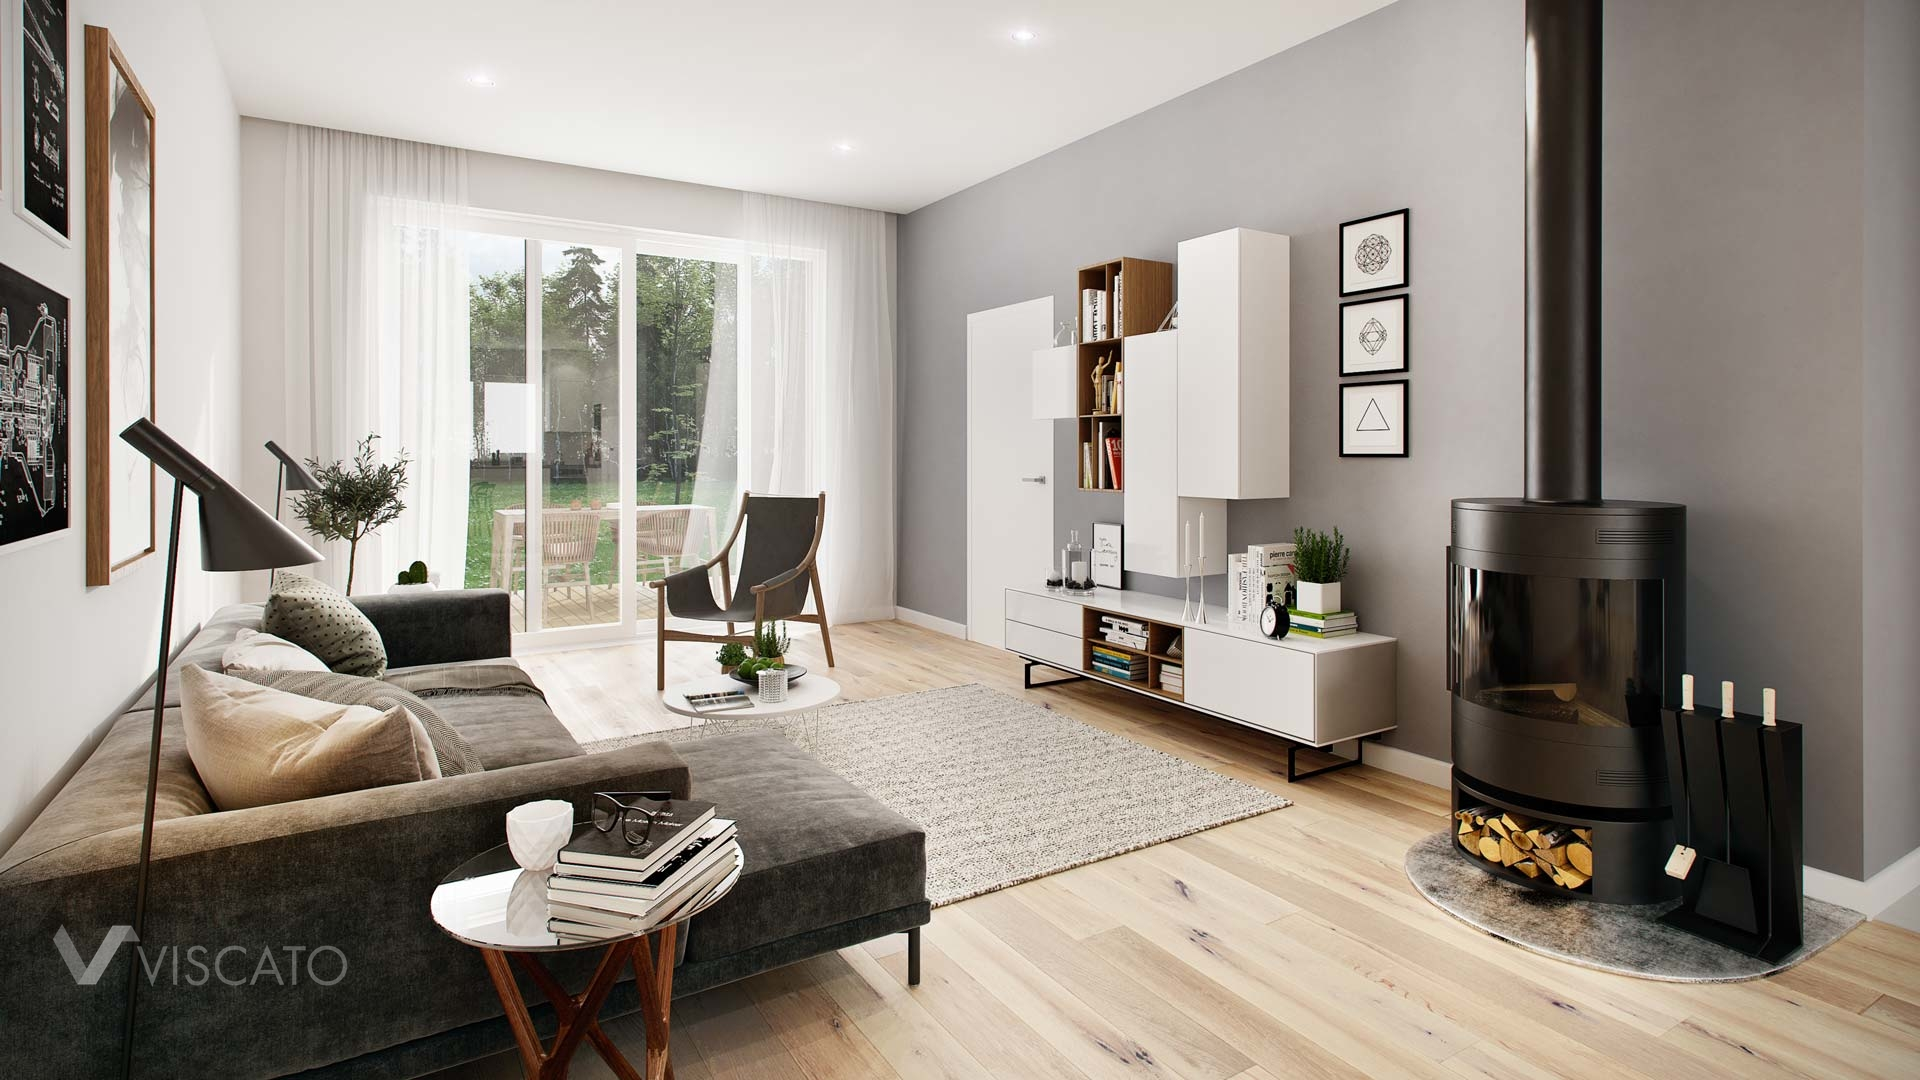 Interior visualization of living-room with fireplace heater Viscato